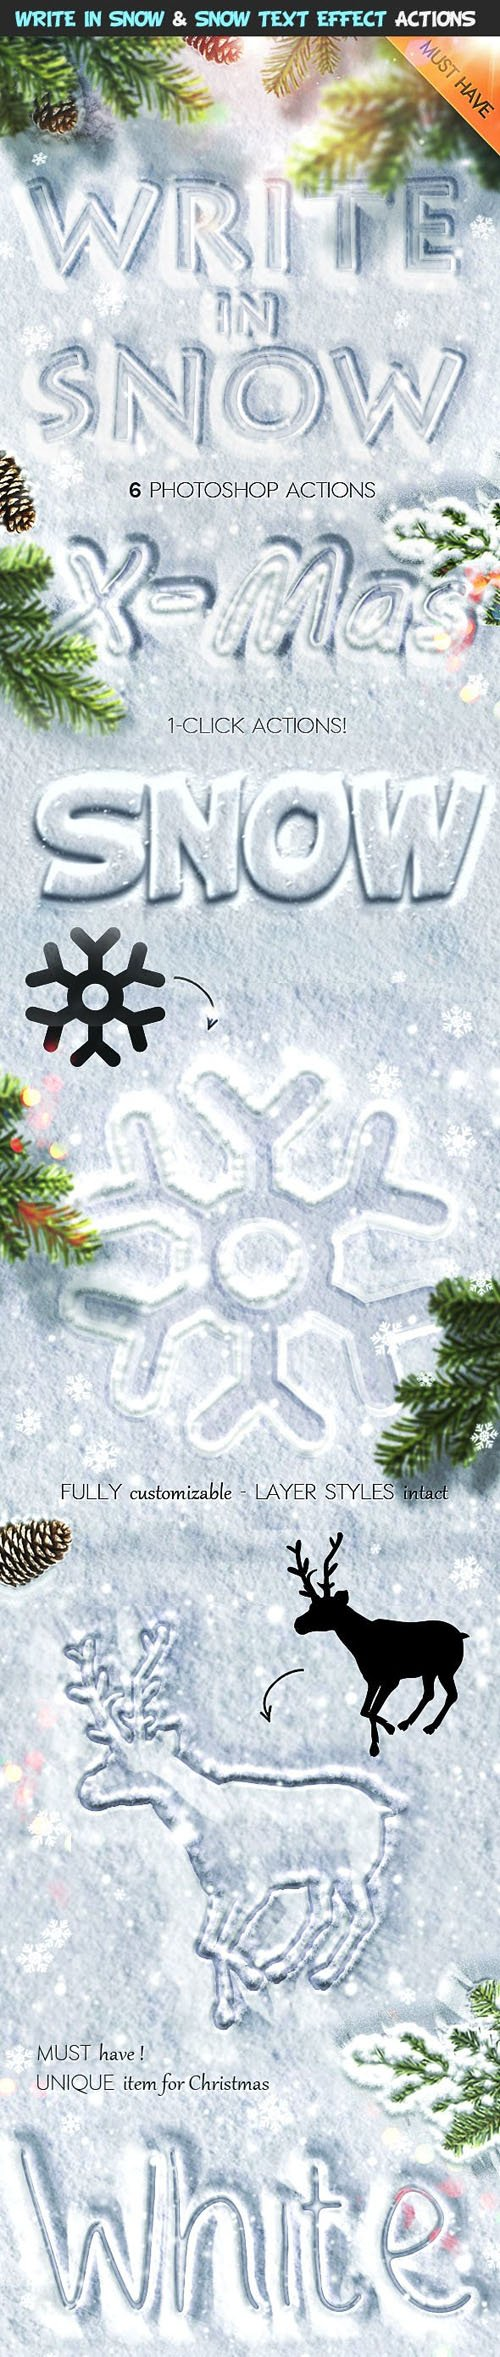 Write in Smow & Snow Text Effect Photoshop Actions, Brushes & Patterns